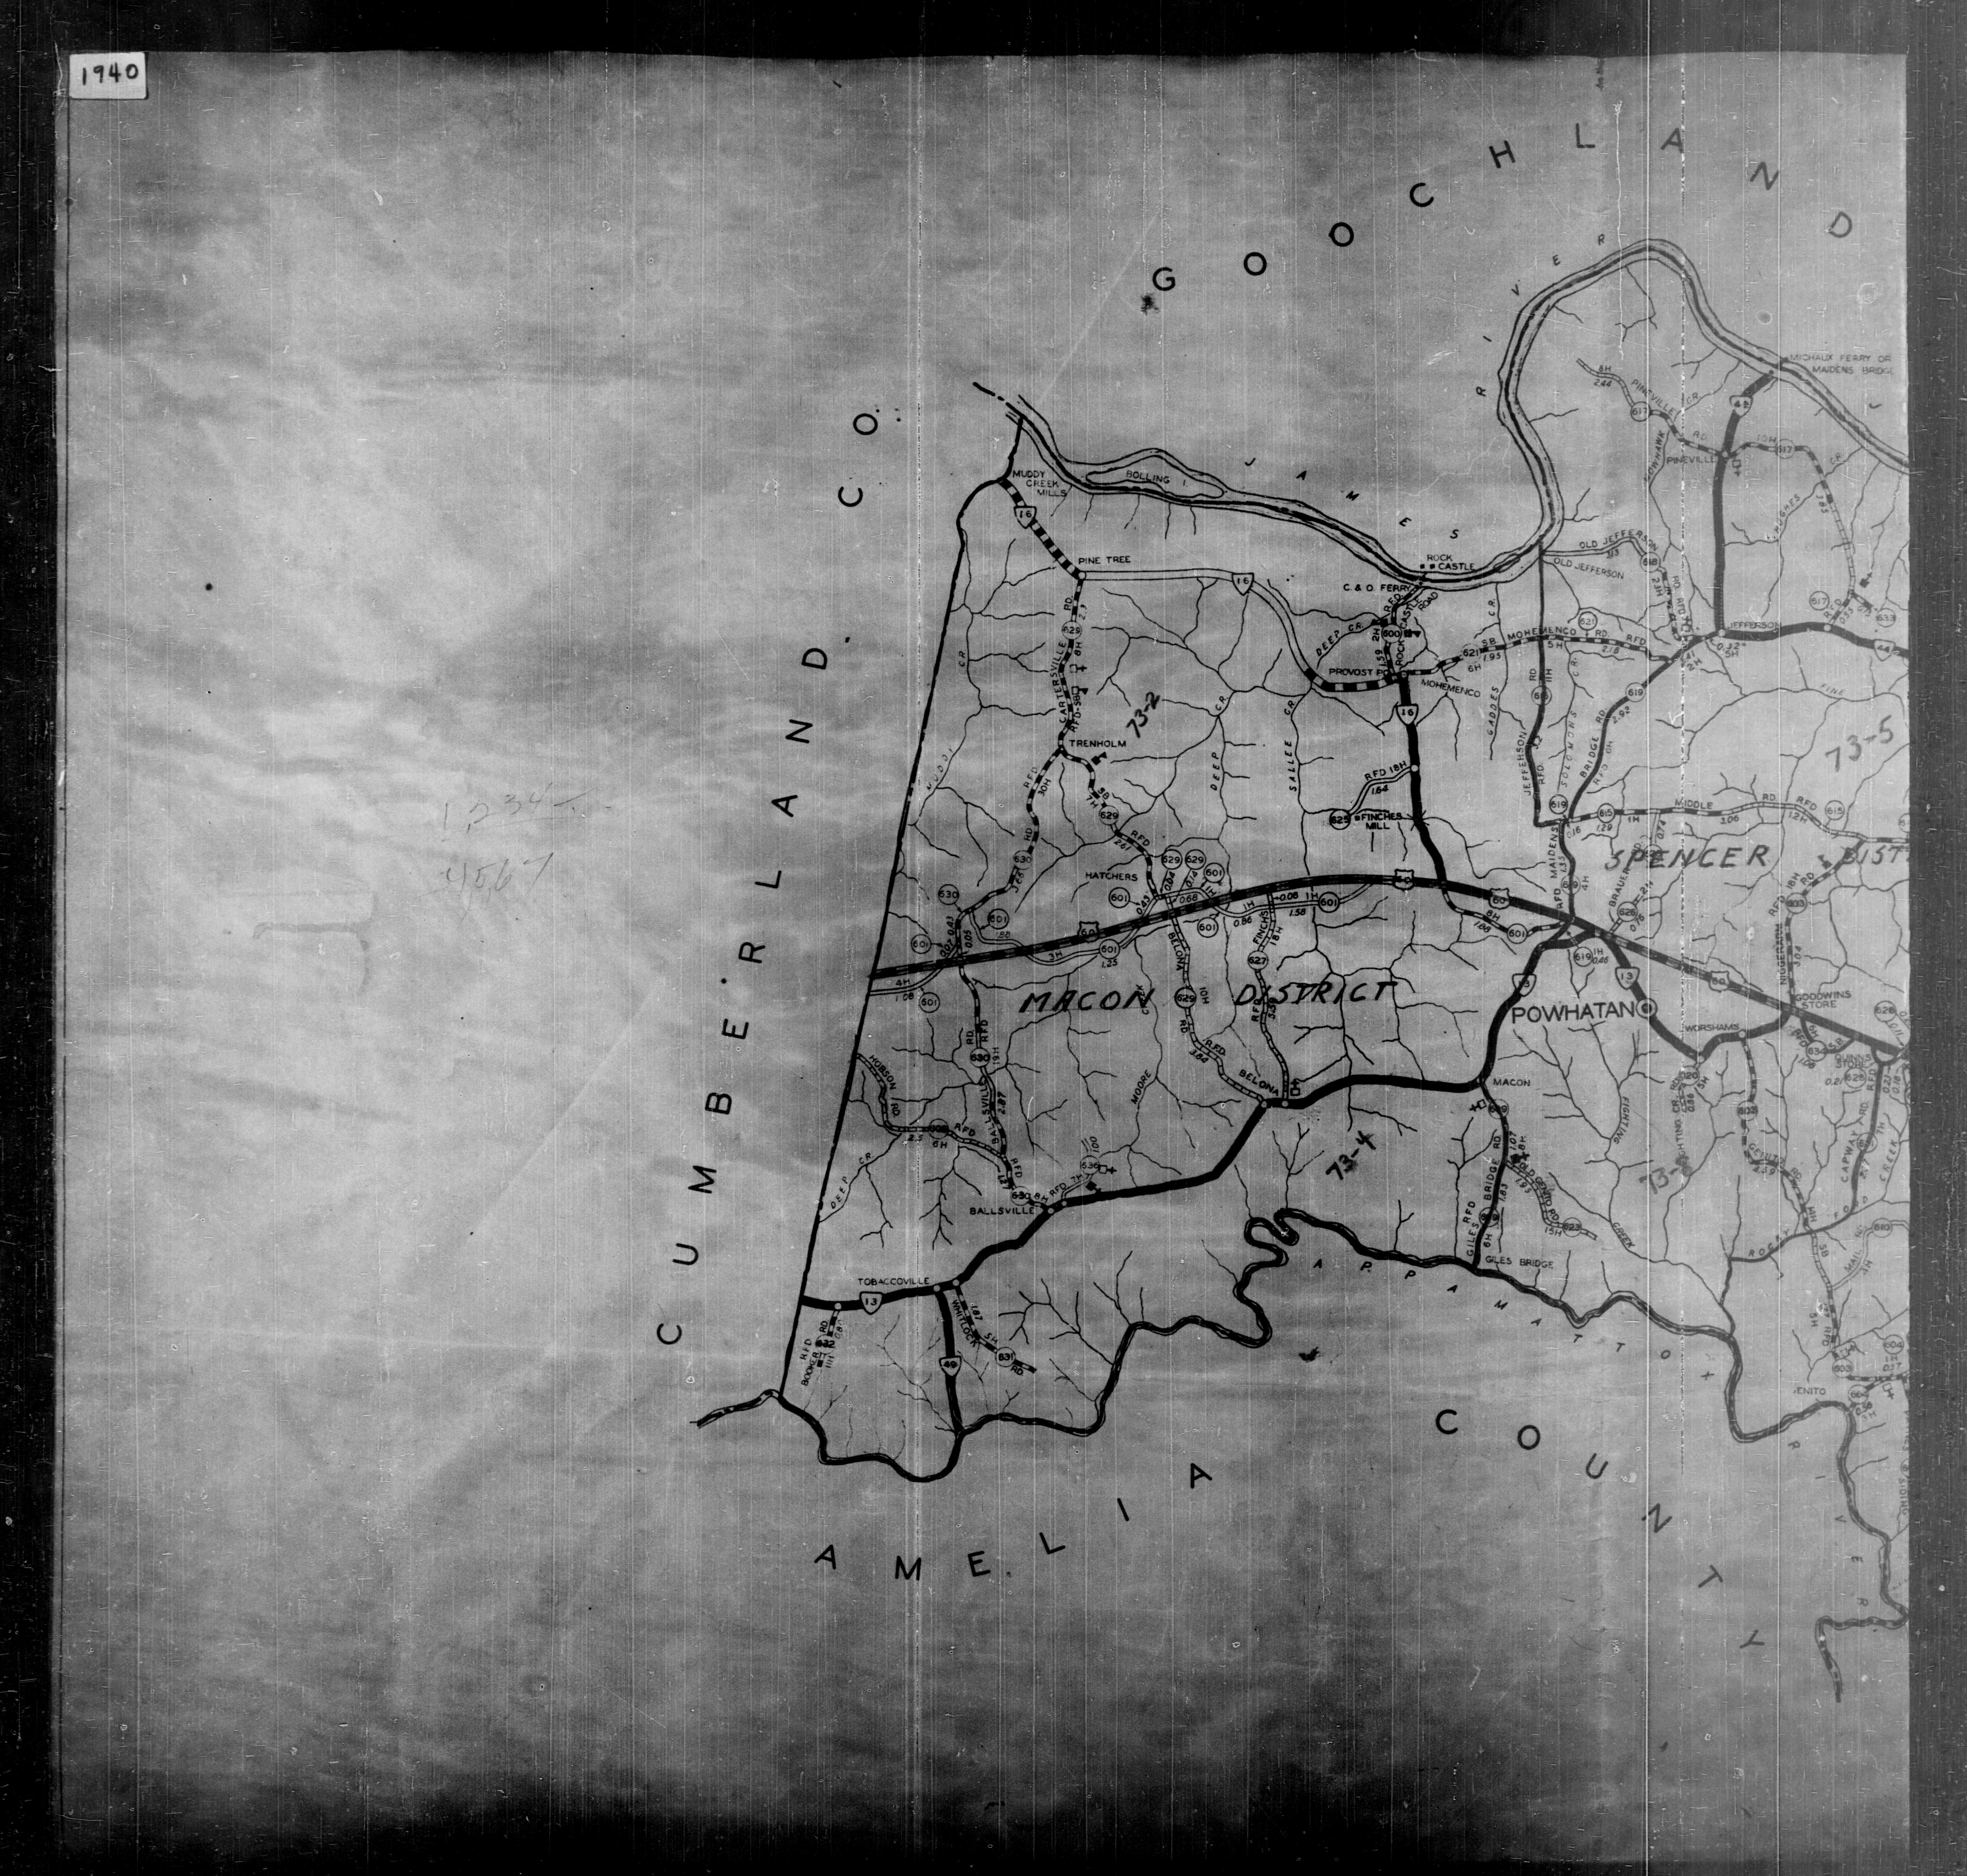 1940 Census Enumeration District Maps - Virginia - Powhatan County on